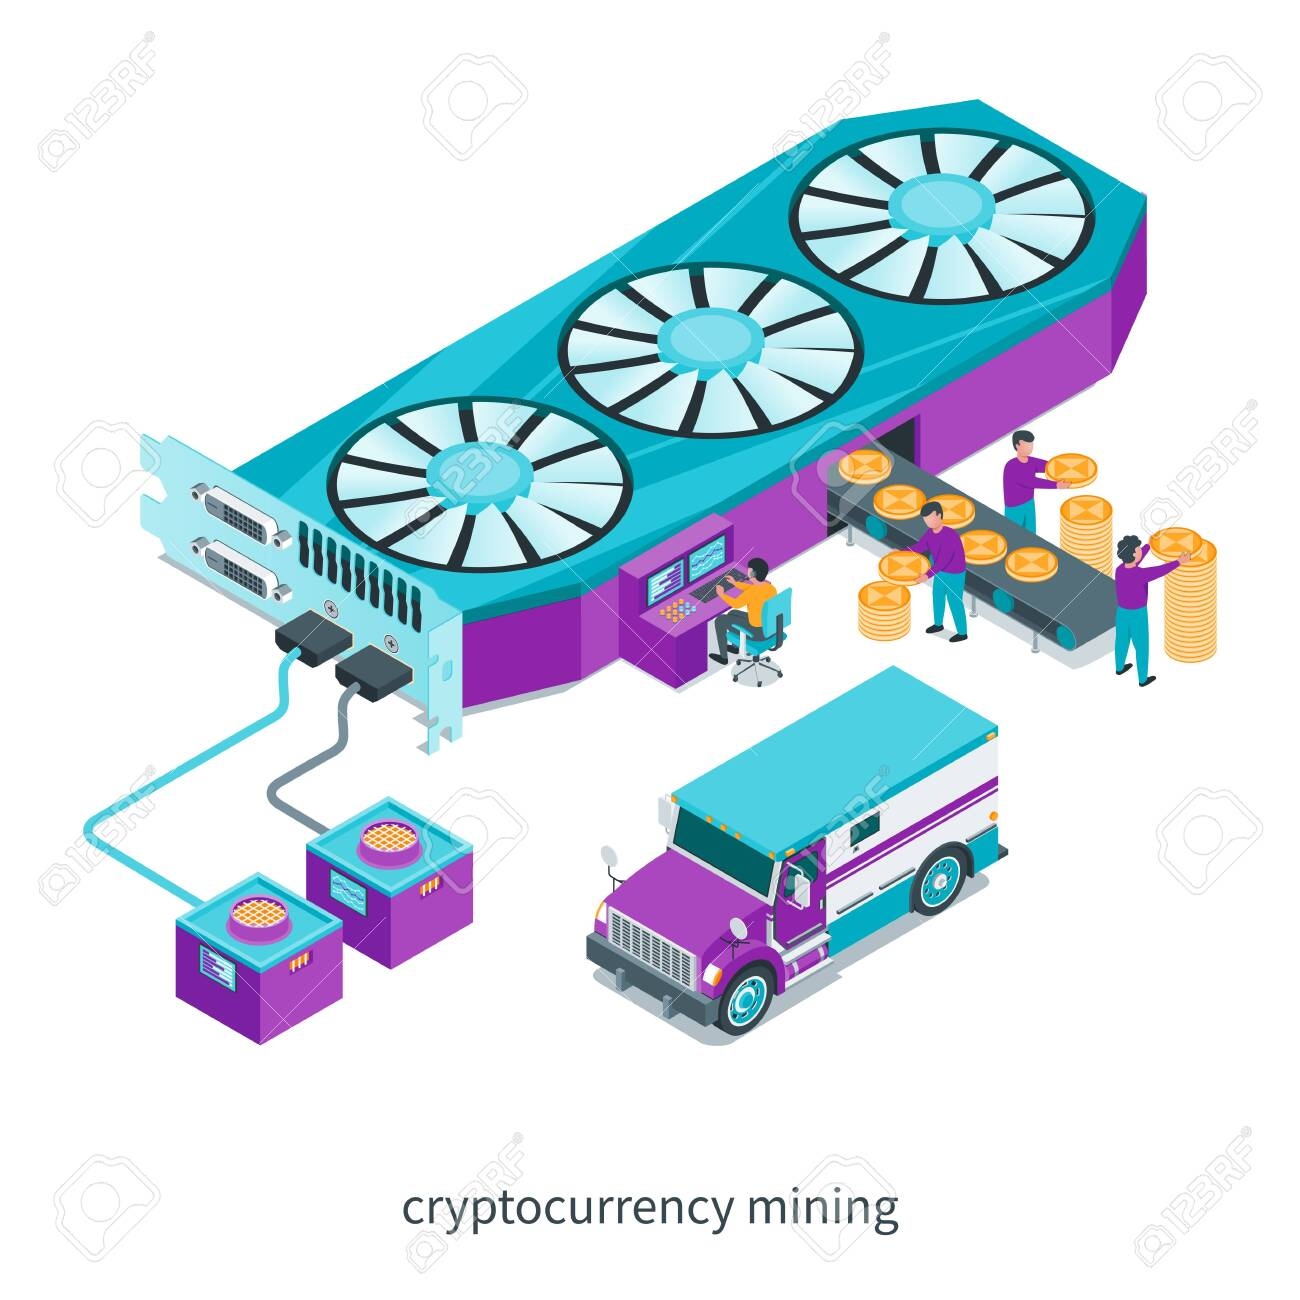 website mining cryptocurrency